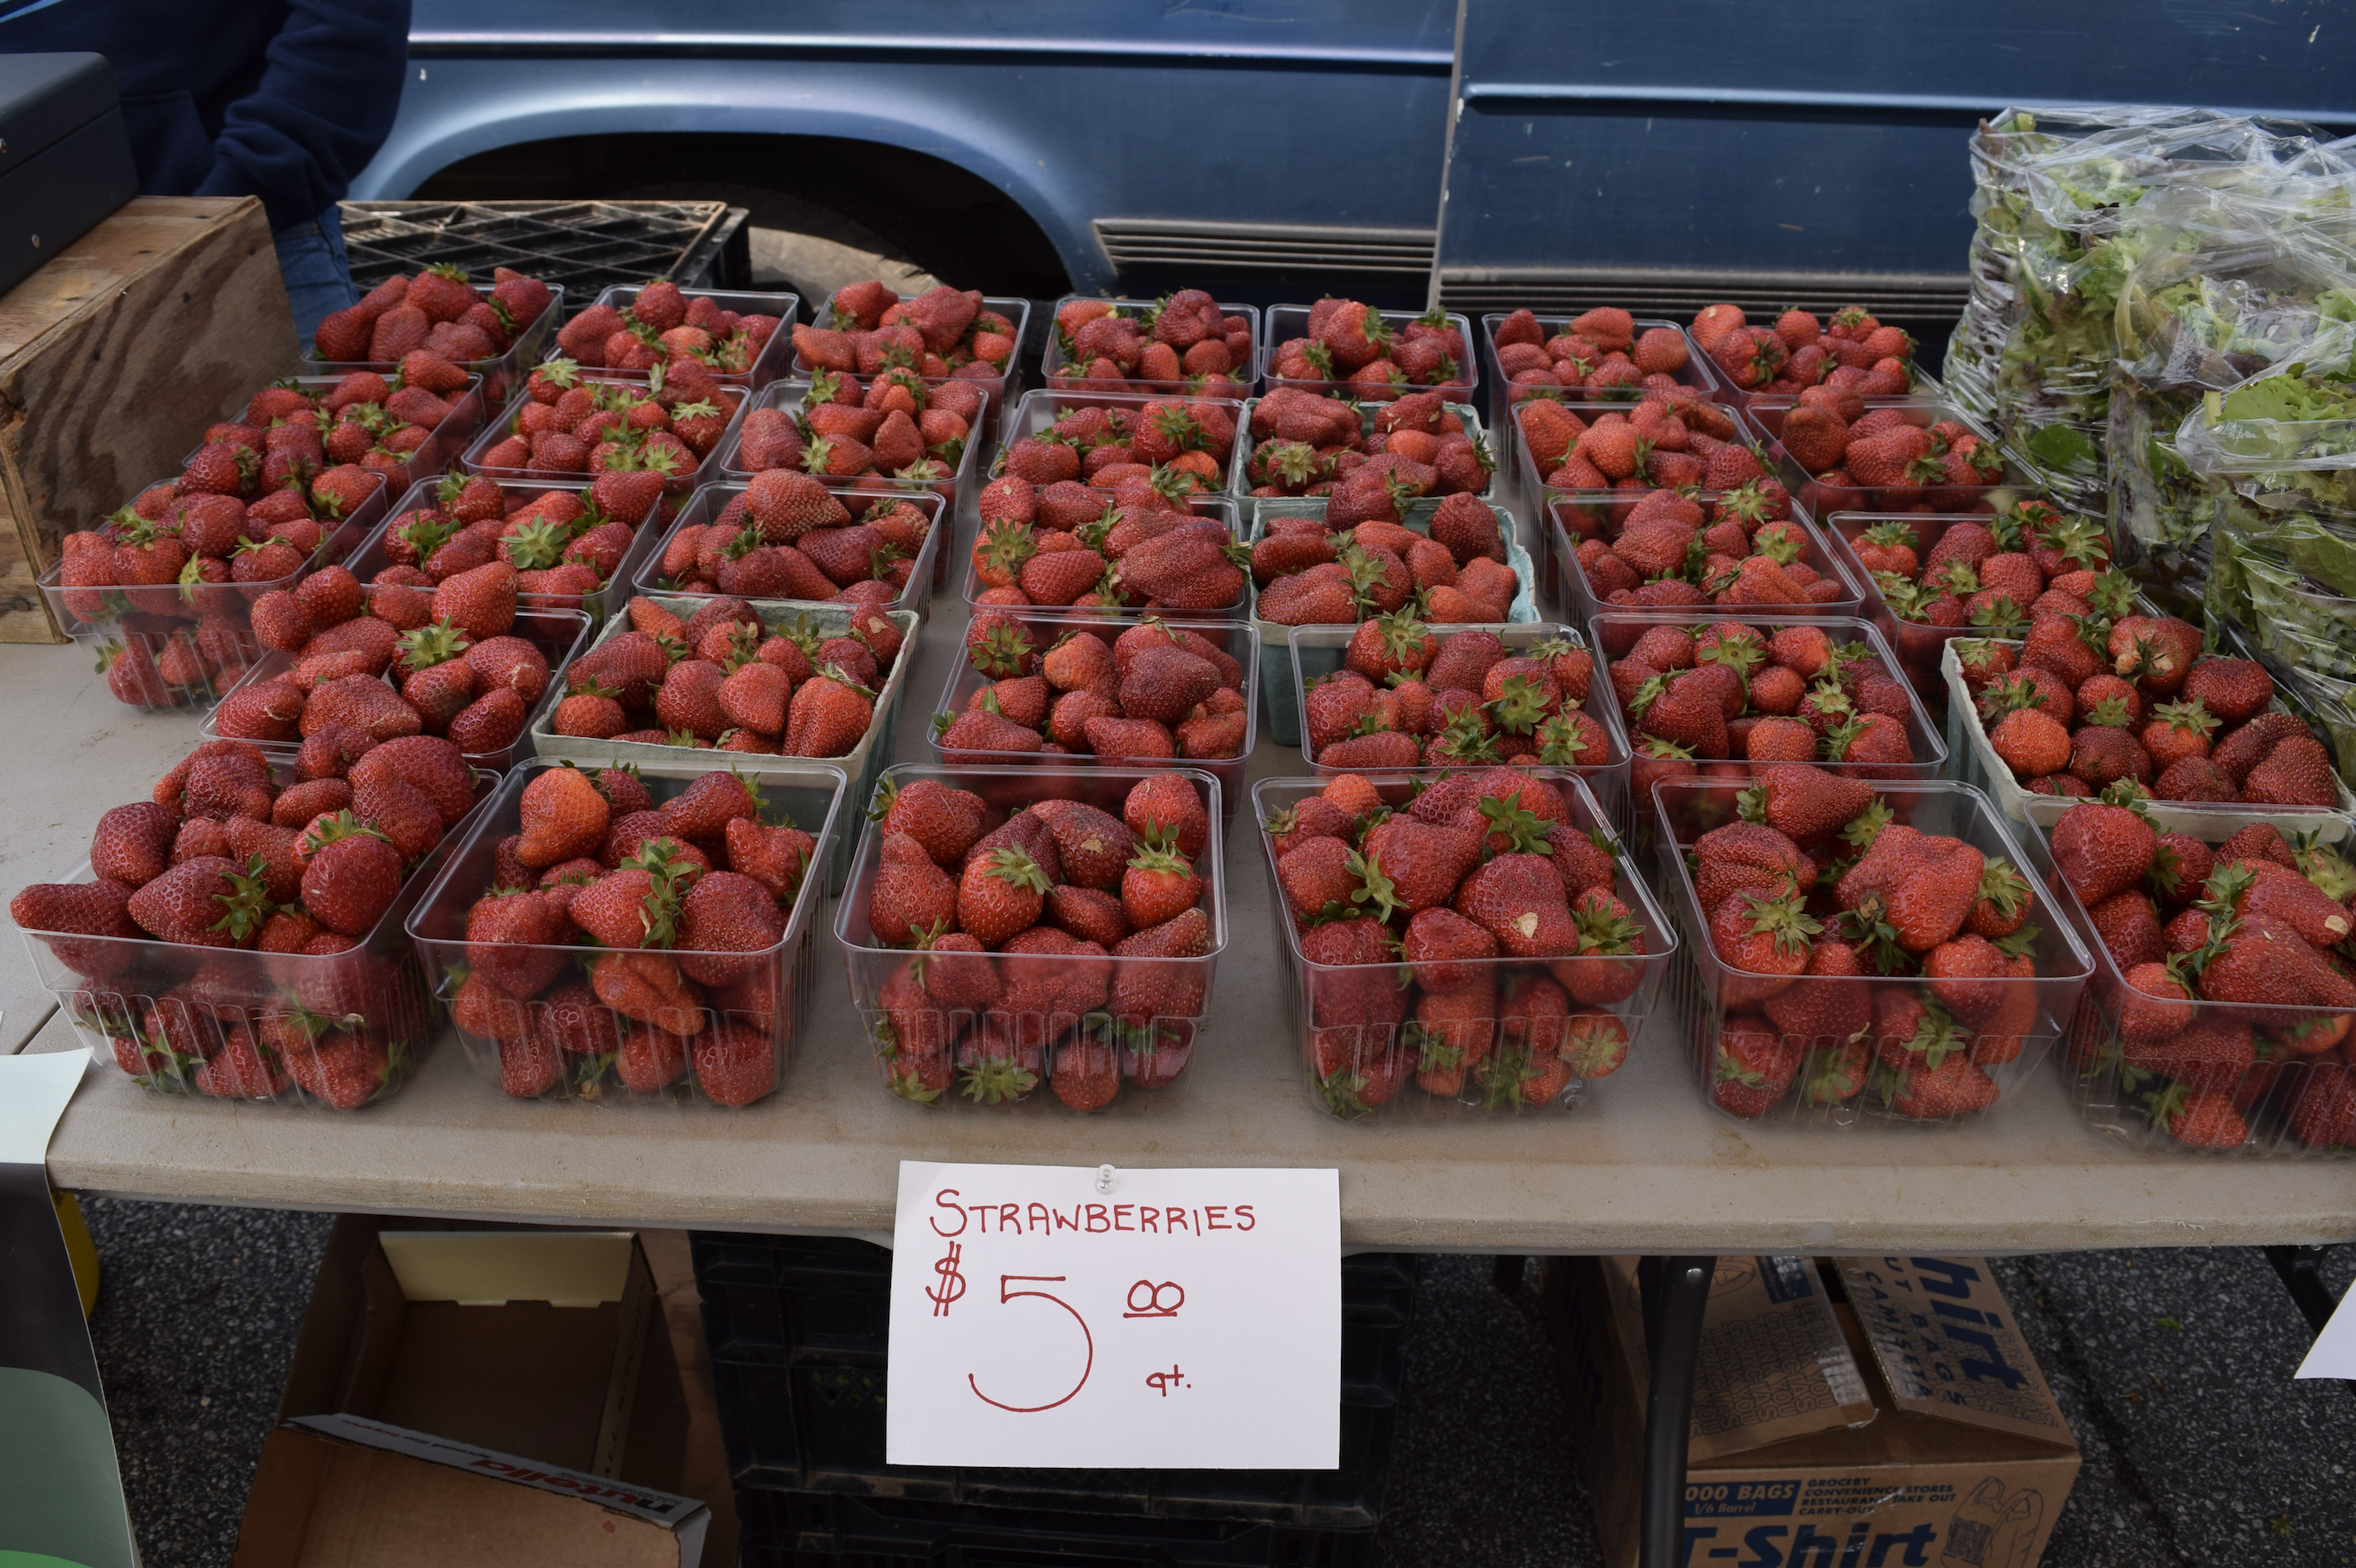 Fresh fruits and produce found at the farmers market in Woodbridge, Virginia - The Market at Potomac Mills